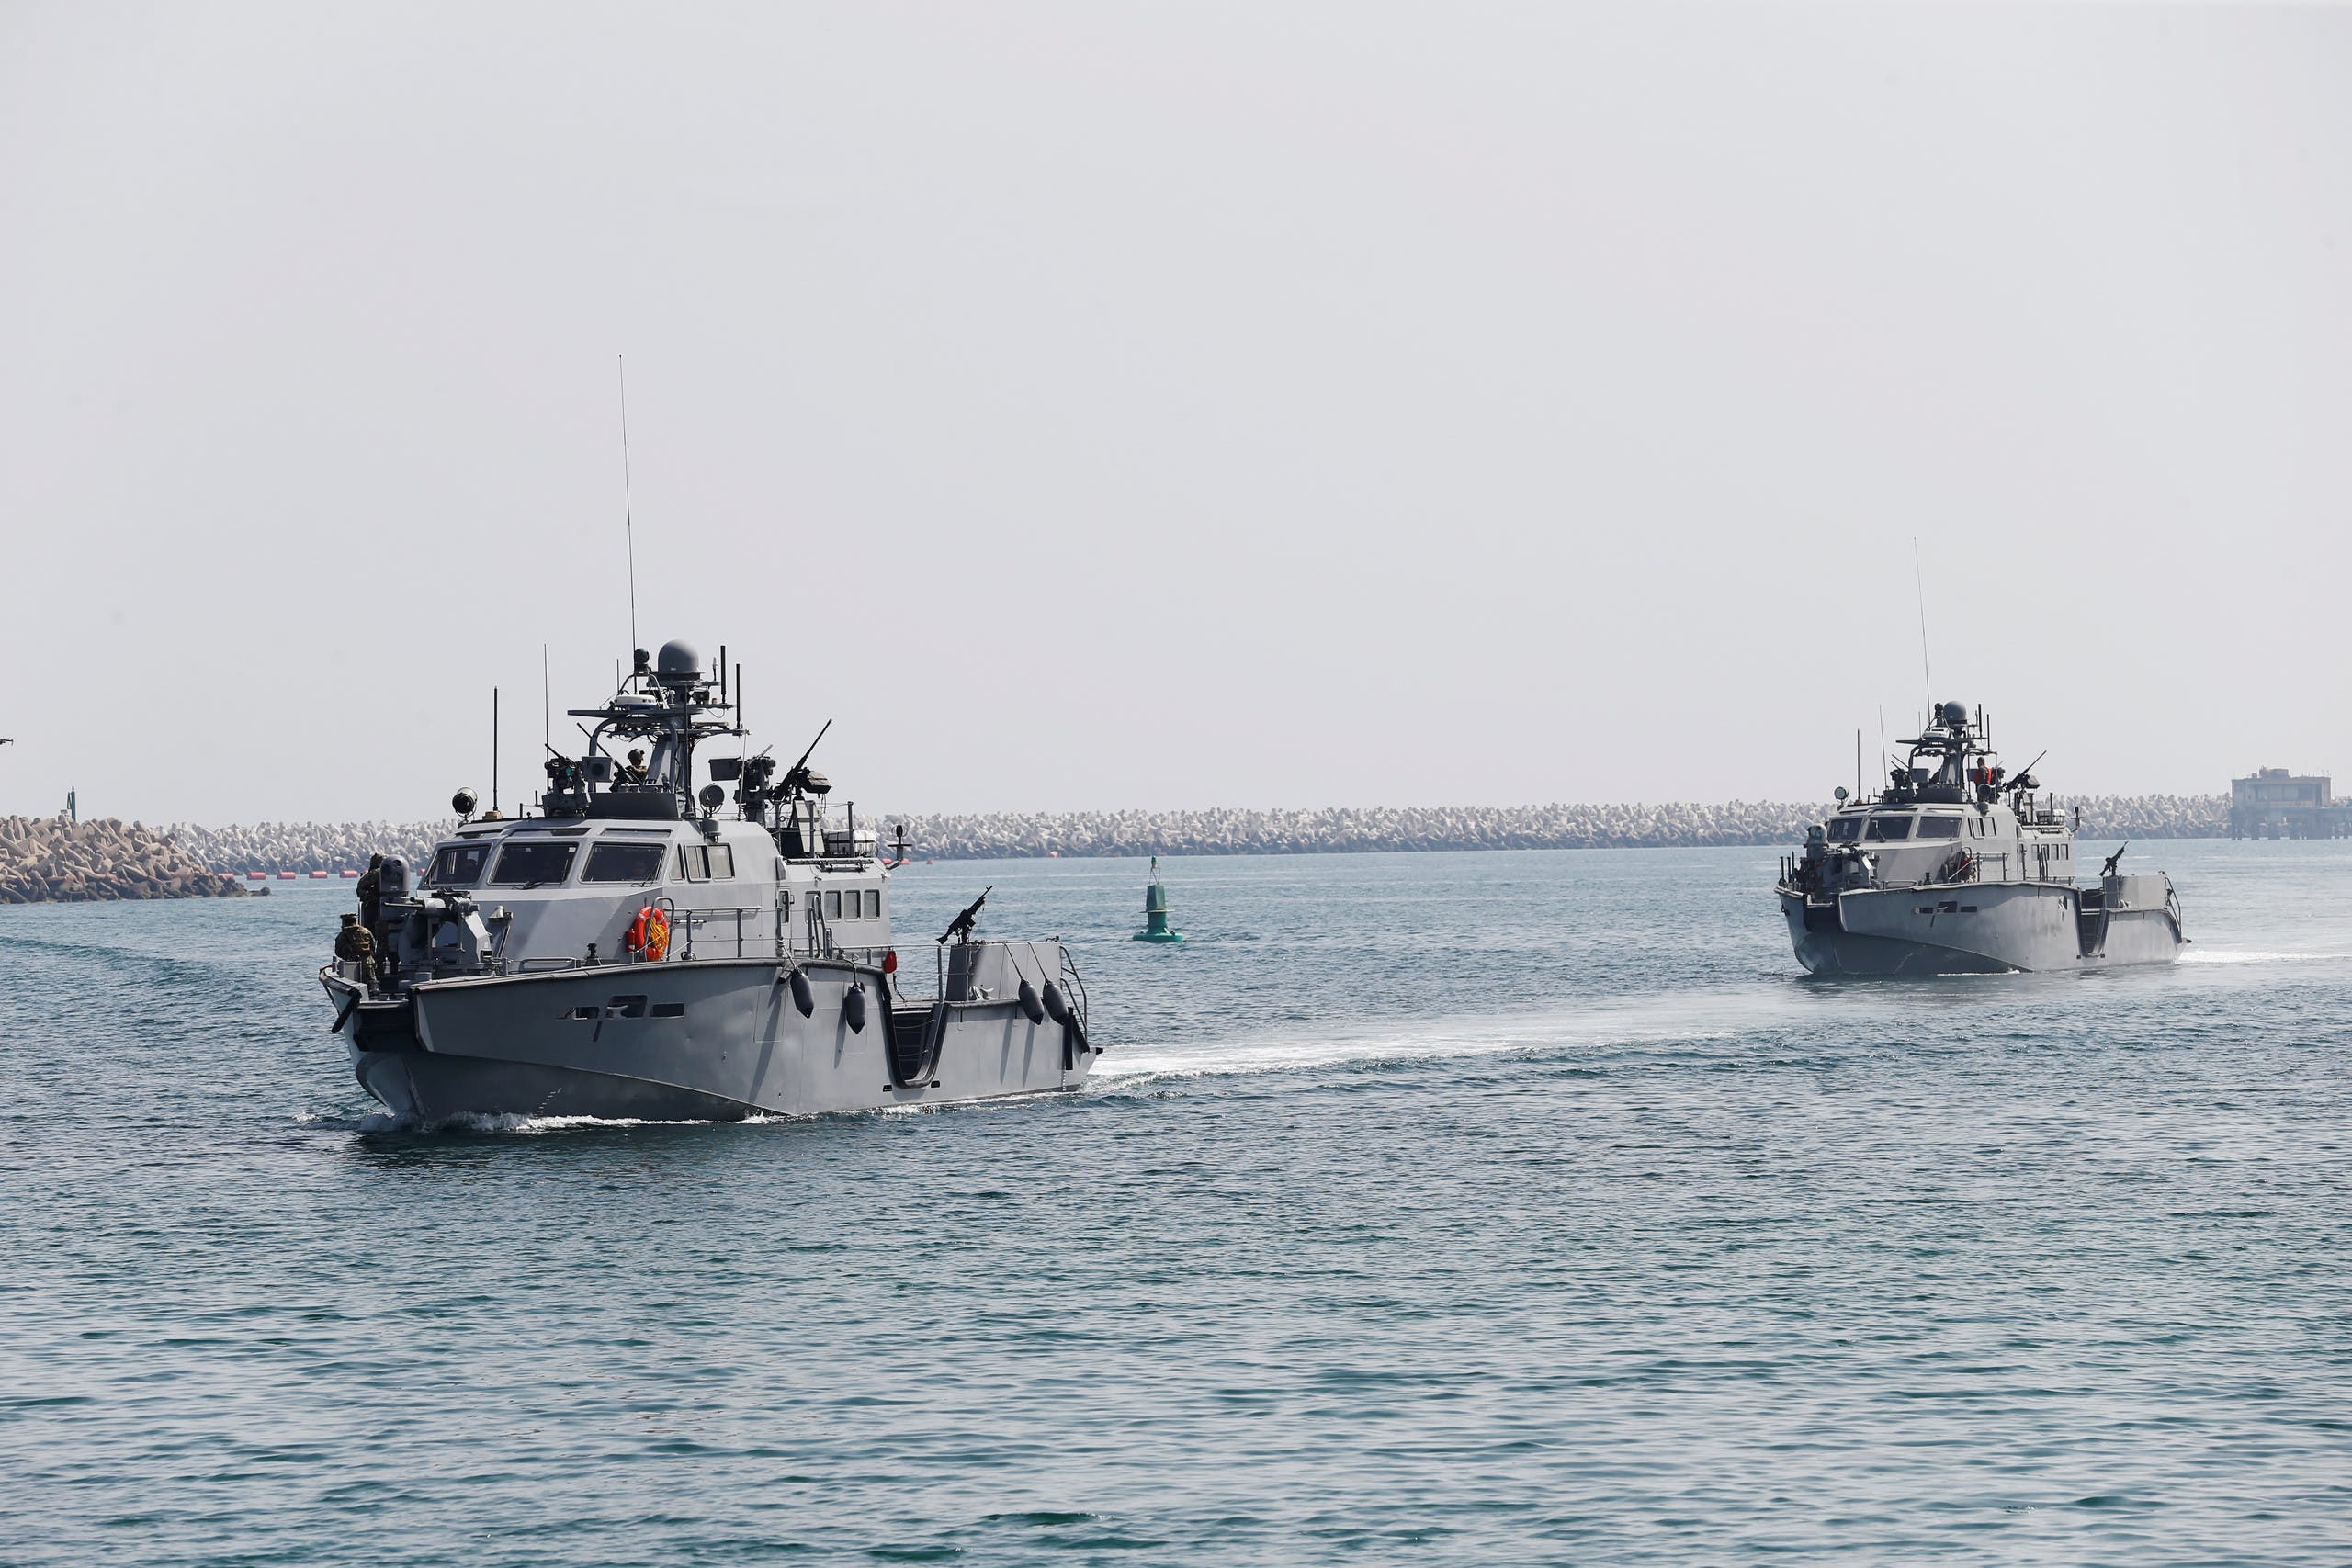 US Navy patrol boats arrive at Saudi Royal Navy, Eastern Fleet Headquarters, during mixed maritime exercise in Jubail. (File photo: Reuters)